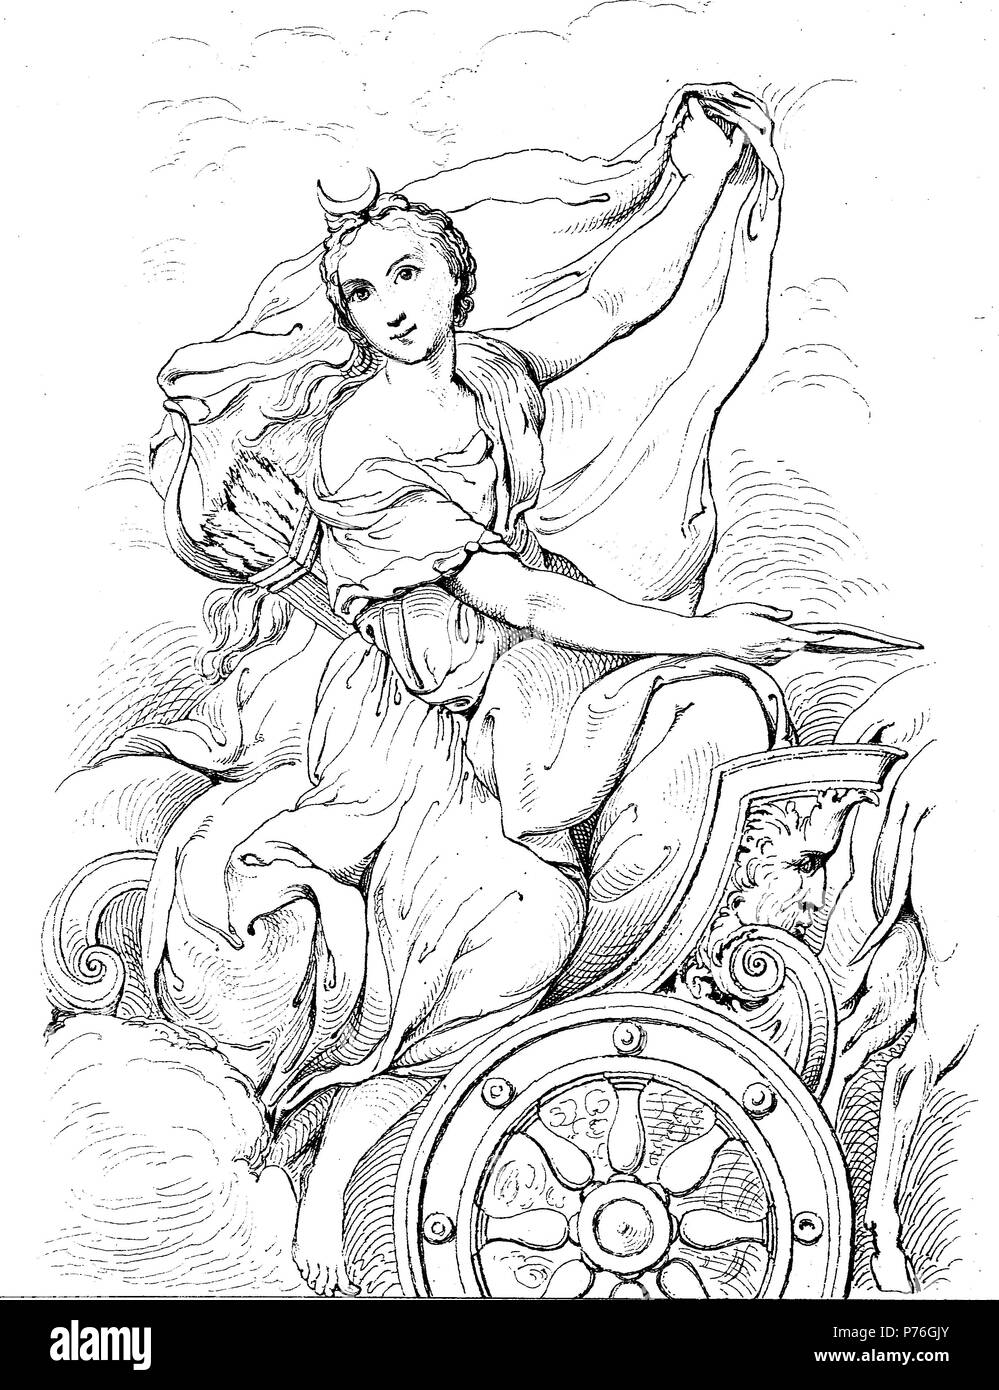 Diana was the goddess of the hunt, the moon, and nature in Roman mythology, associated with wild animals and woodland, and having the power to talk to and control animals, digital improved reproduction of an original print from the year 1881 - Stock Image